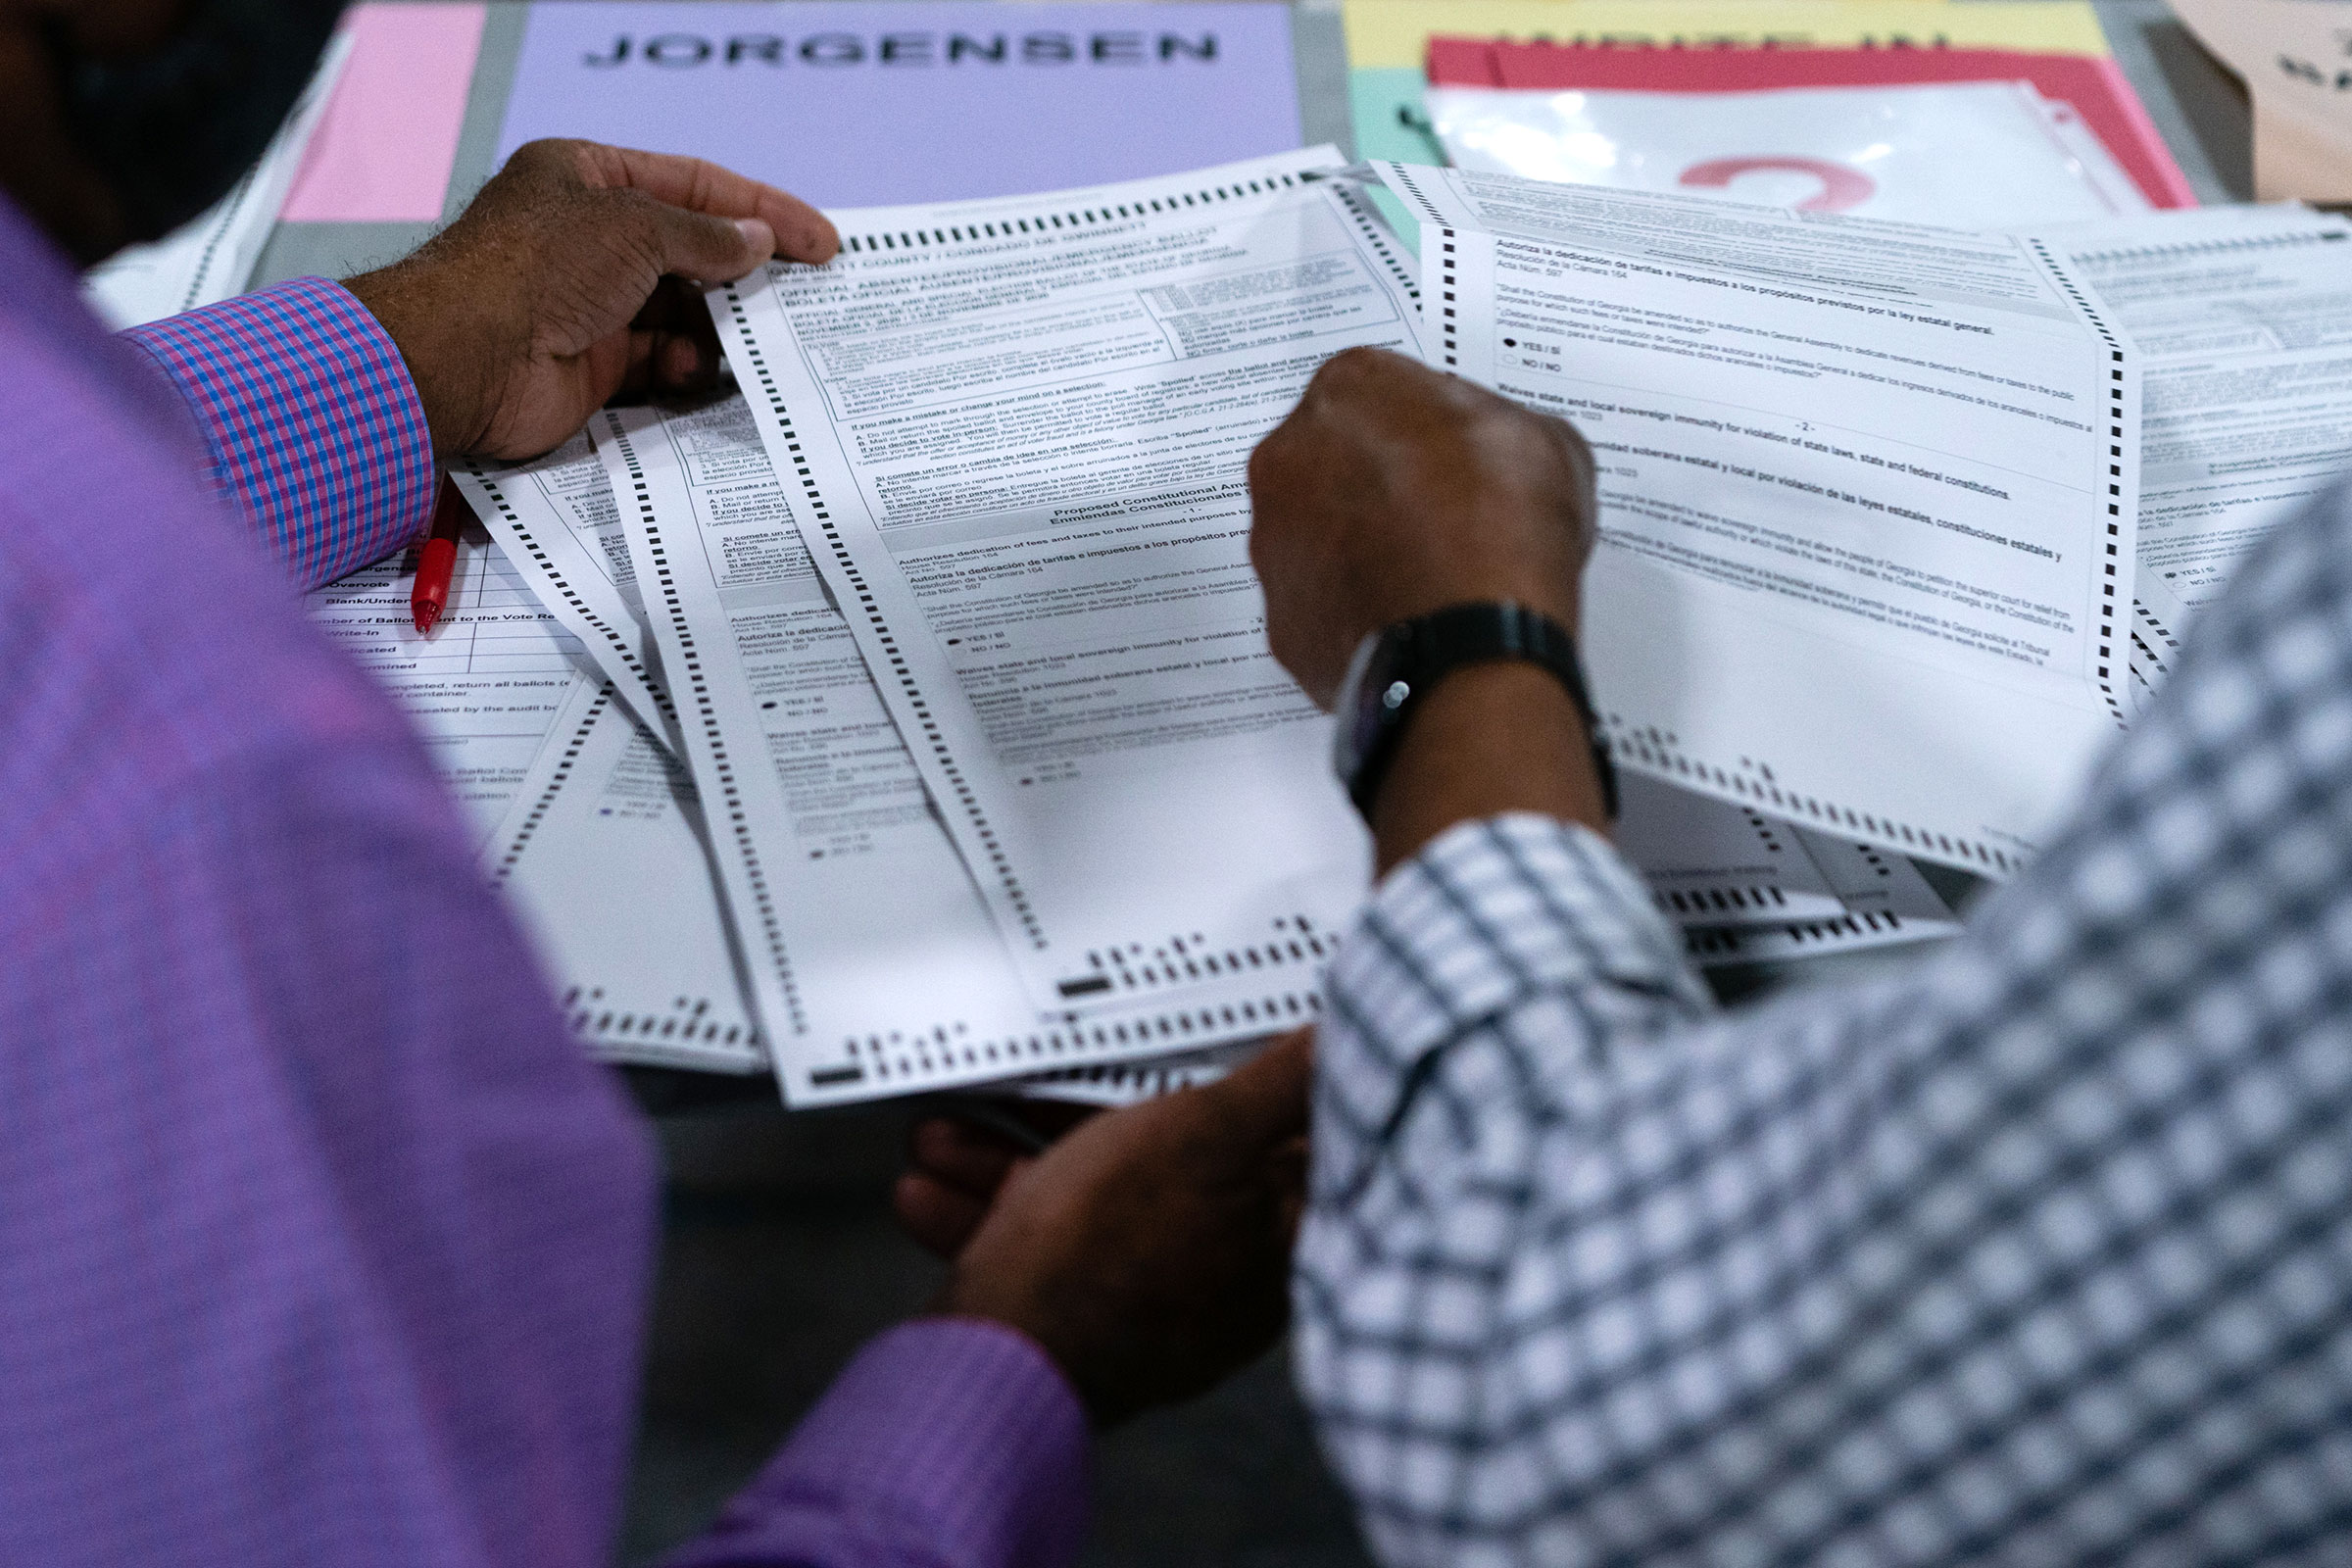 People hand count ballots at the Gwinnett County Voter Registration office on November 13 in Lawrenceville, Georgia